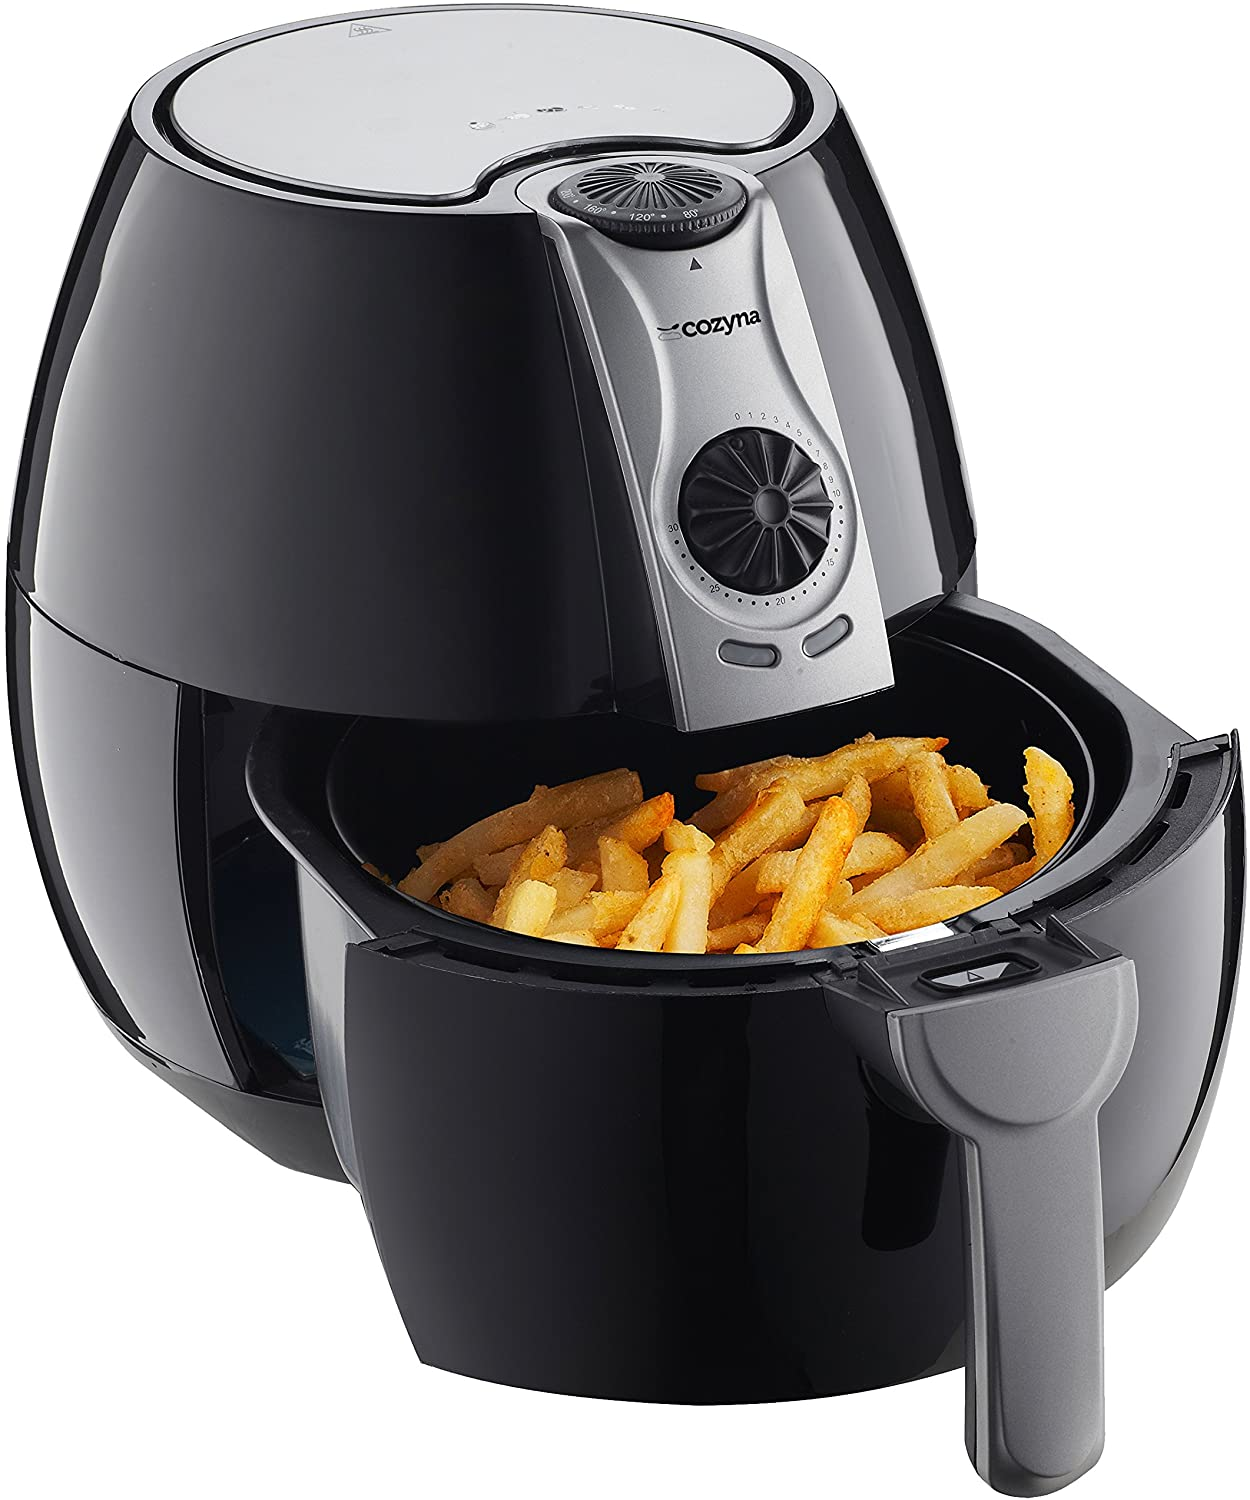 Cozyna 3.7QT Air Fryer Oven Review